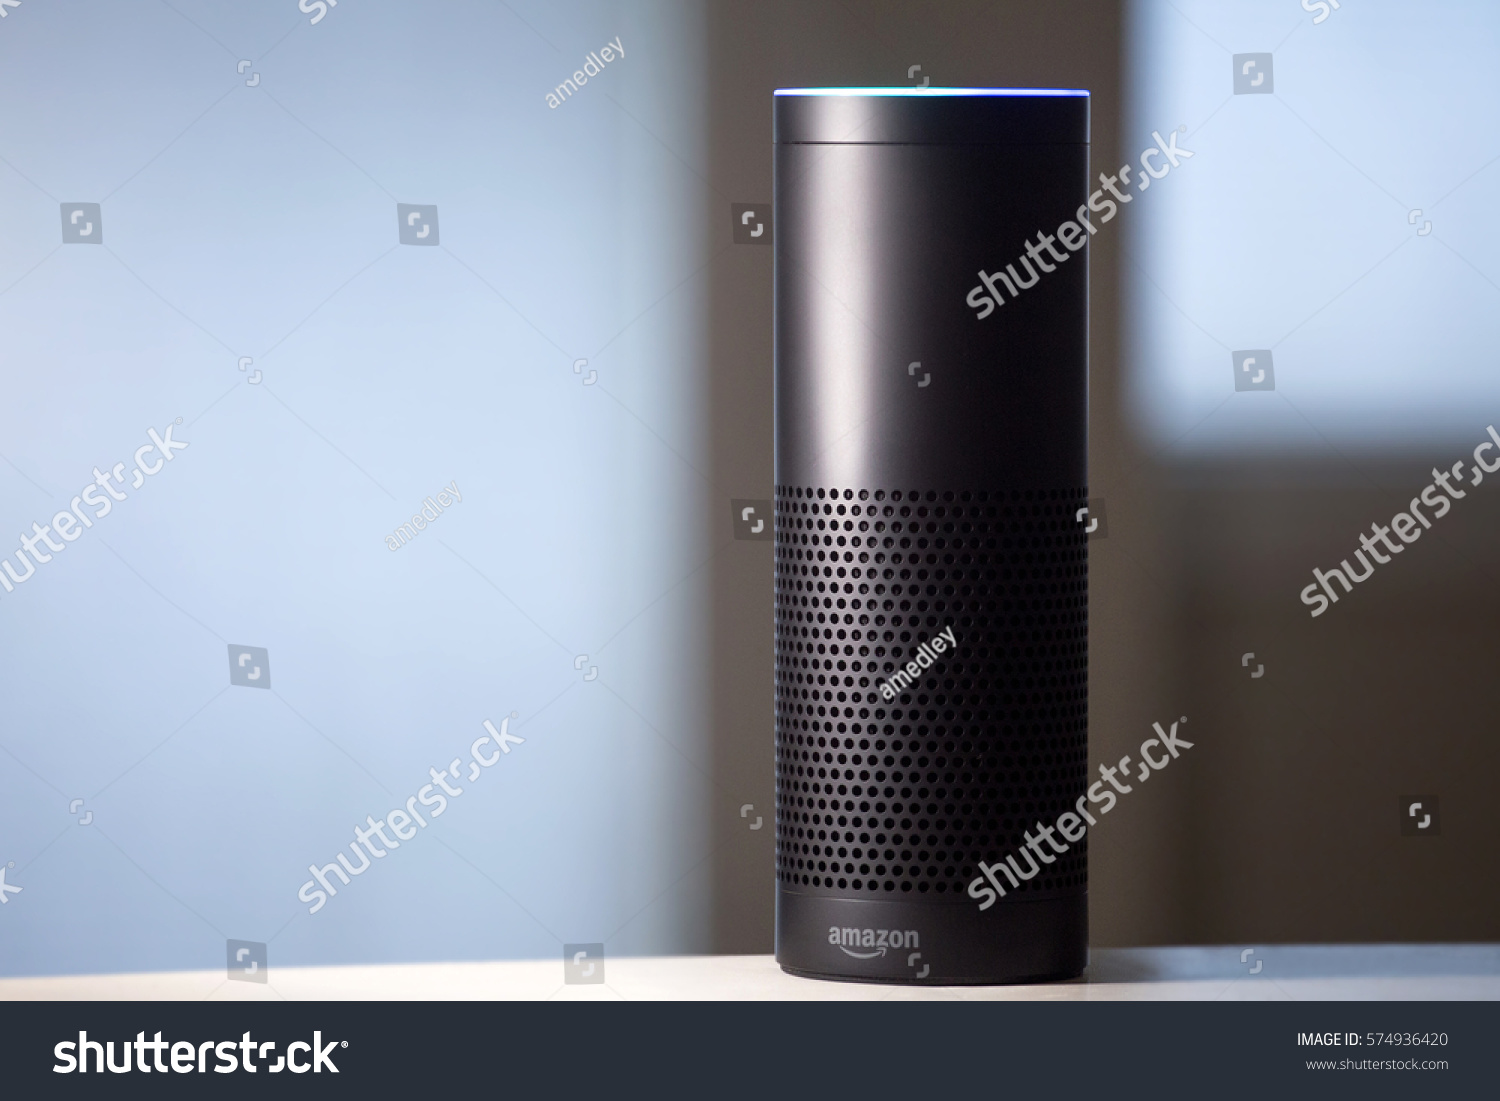 Amazon echo voice activated recognition system stock photo for Voice assistant italiano